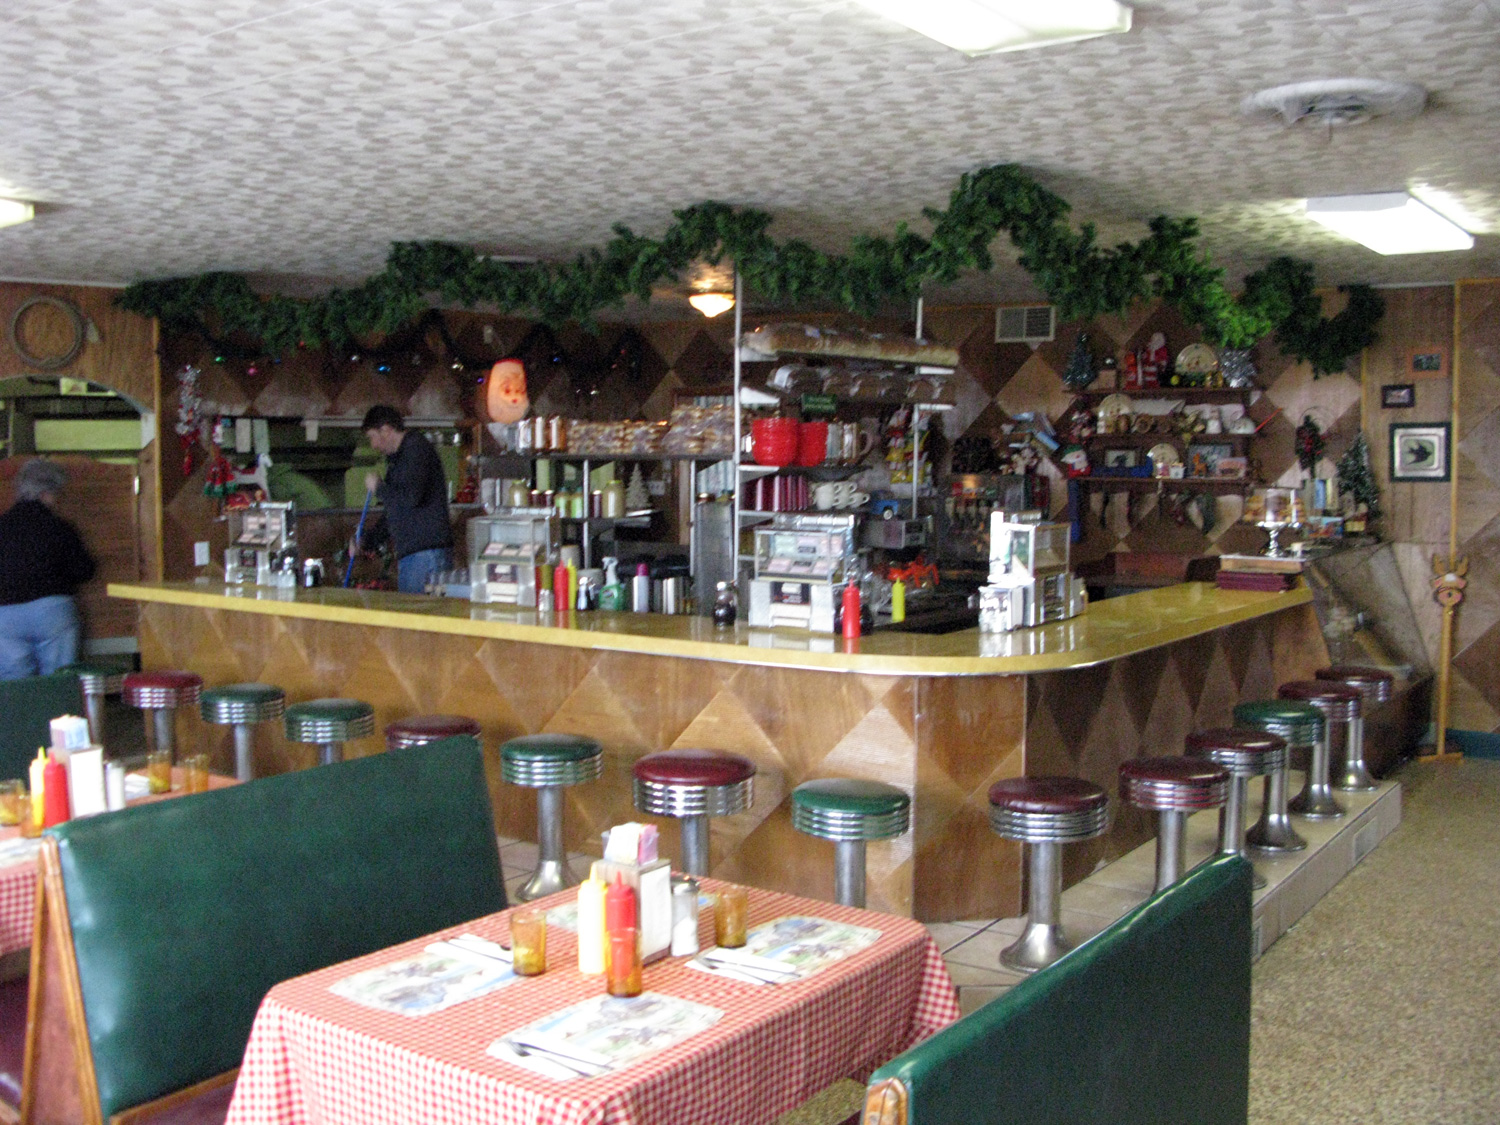 Classic American diner interior, done up for an over the top, Route 66 Christmas.